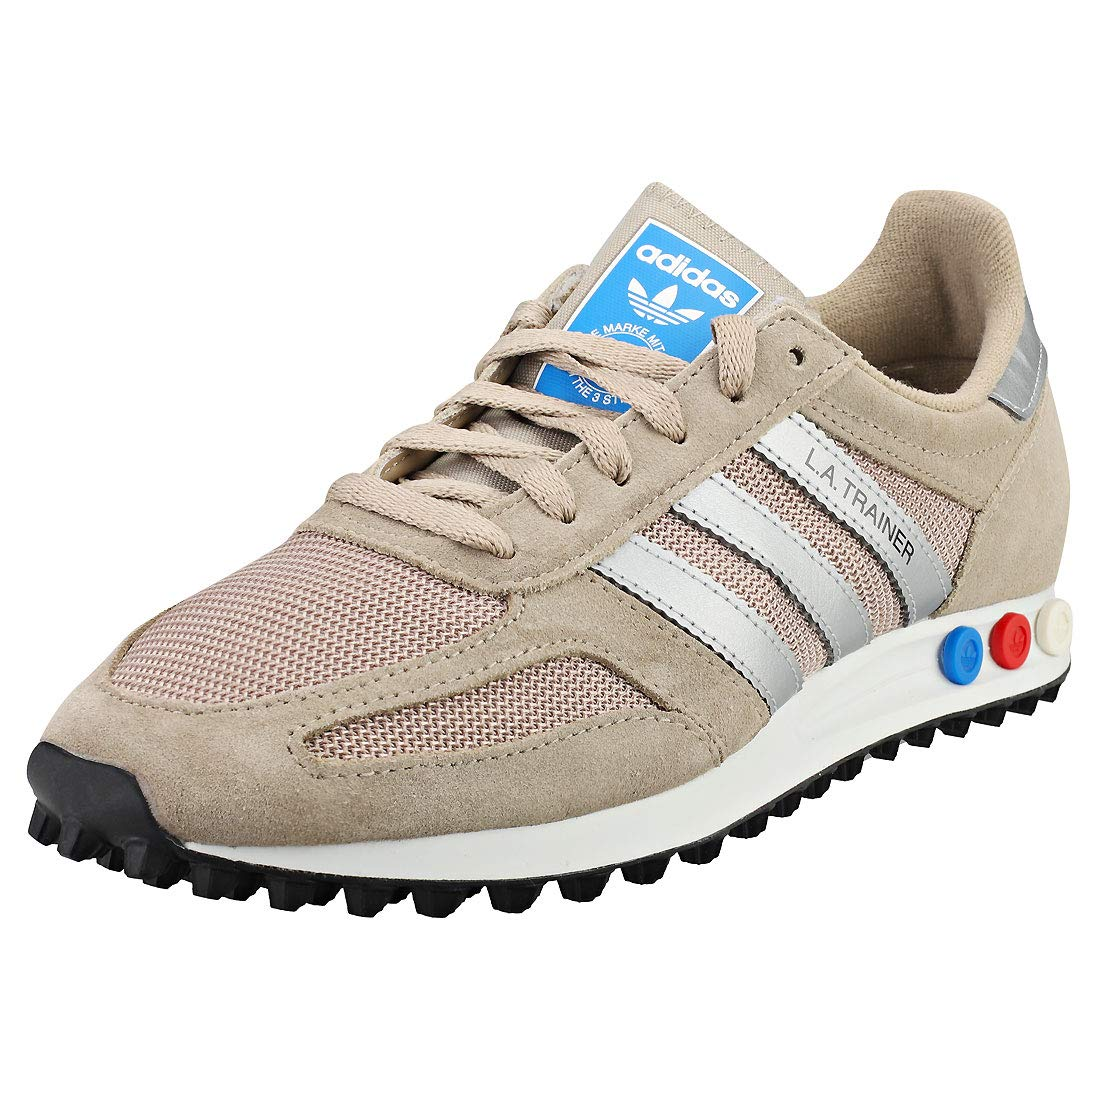 pretty nice 3a14d 1d5da adidas Mens La Trainer Fitness Shoes Amazon.co.uk Shoes  Bag